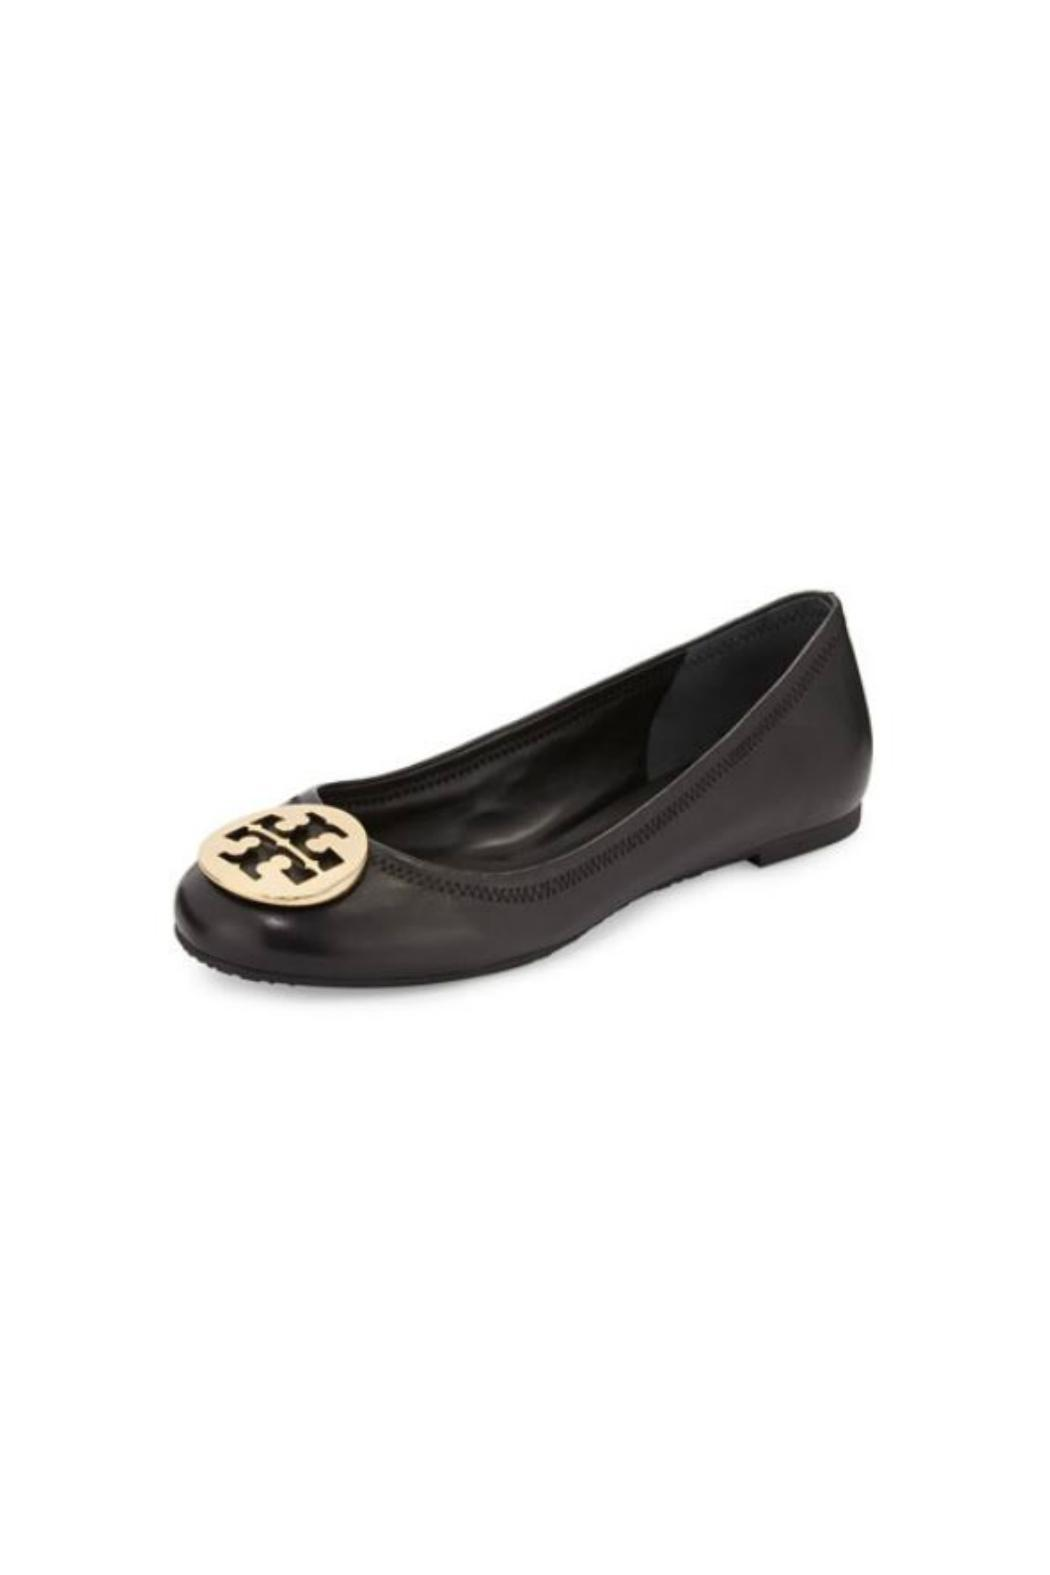 Official Tory Burch Outlet Online,We Supply Cheap Tory Burch Shoes, Sandals, Handbags and Flats With Many Discount, Enjoy Free Shipping From Tory Burch Factory Outlet!